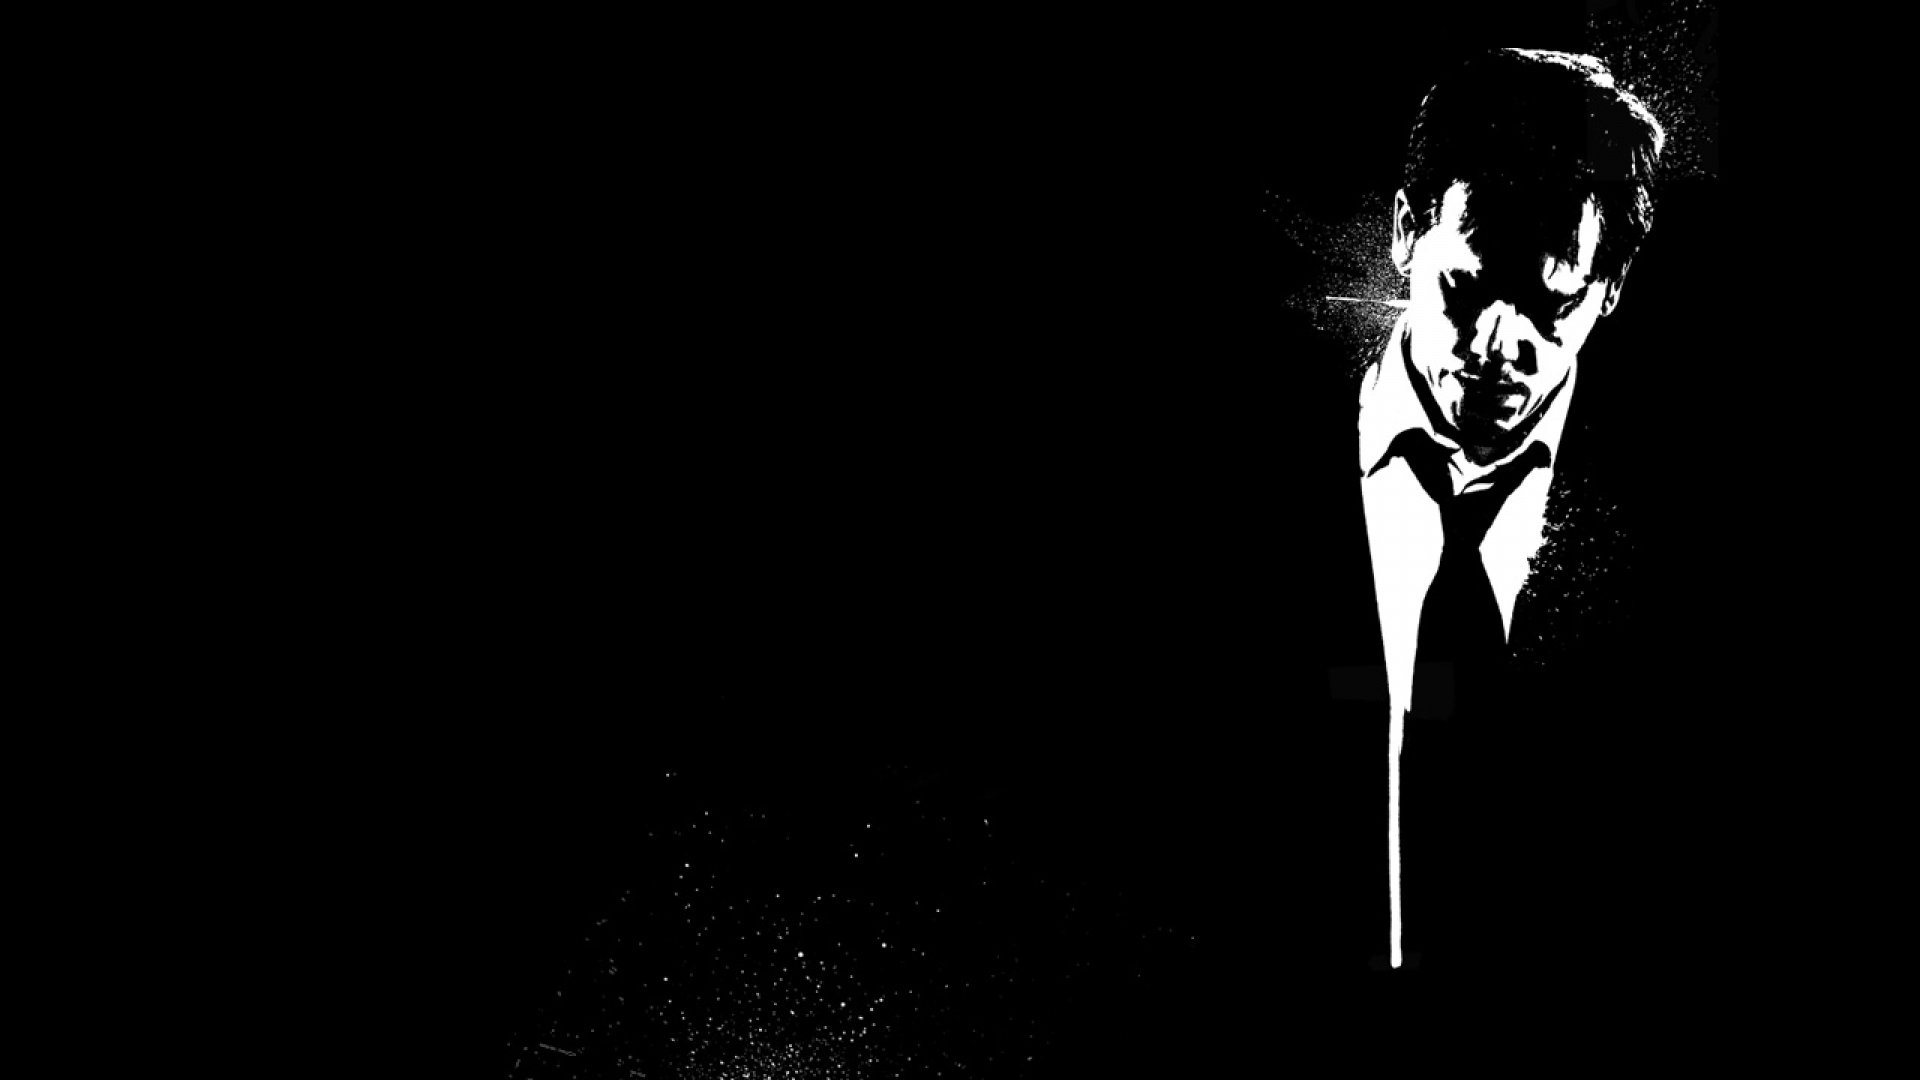 download wallpaper 1920x1080 death sentence, bw, black white, man